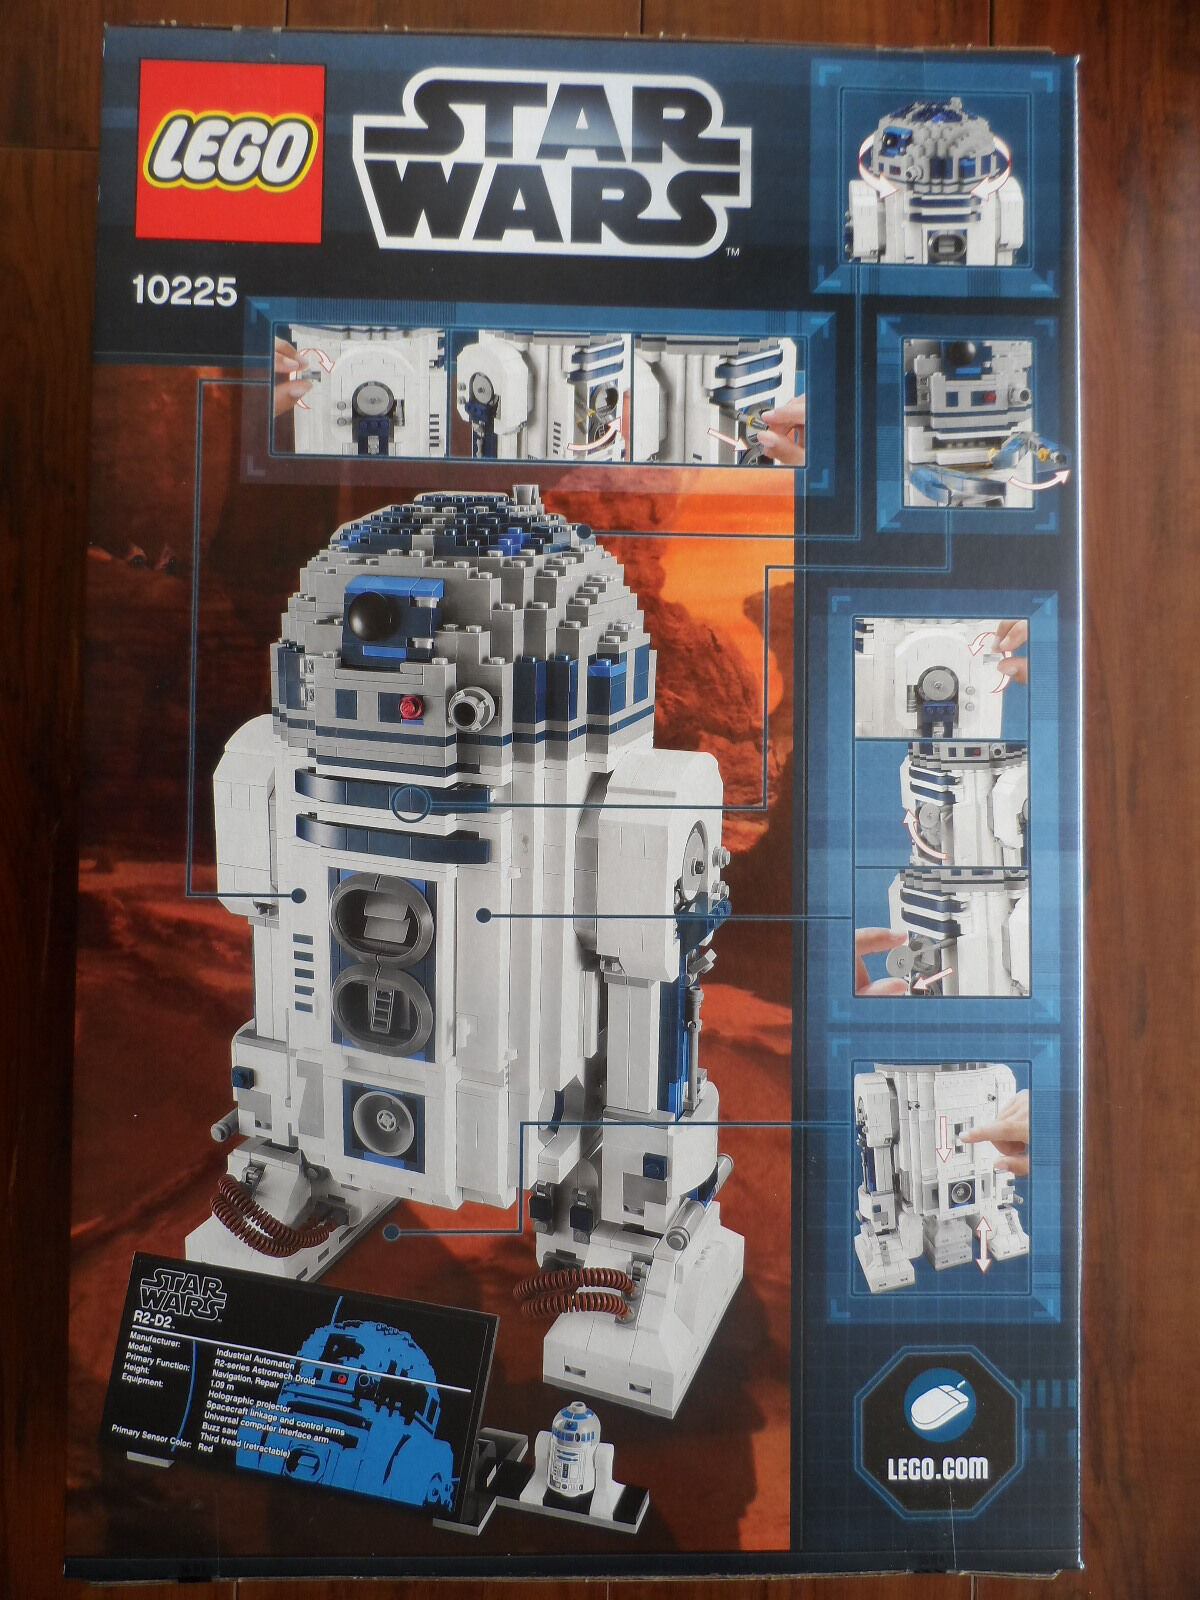 NEW AND FACTORY SEALED STAR WARS ULTIMATE COLLECTOR SERIES SERIES SERIES LEGO SET 10225 R2-D2 aa94ef